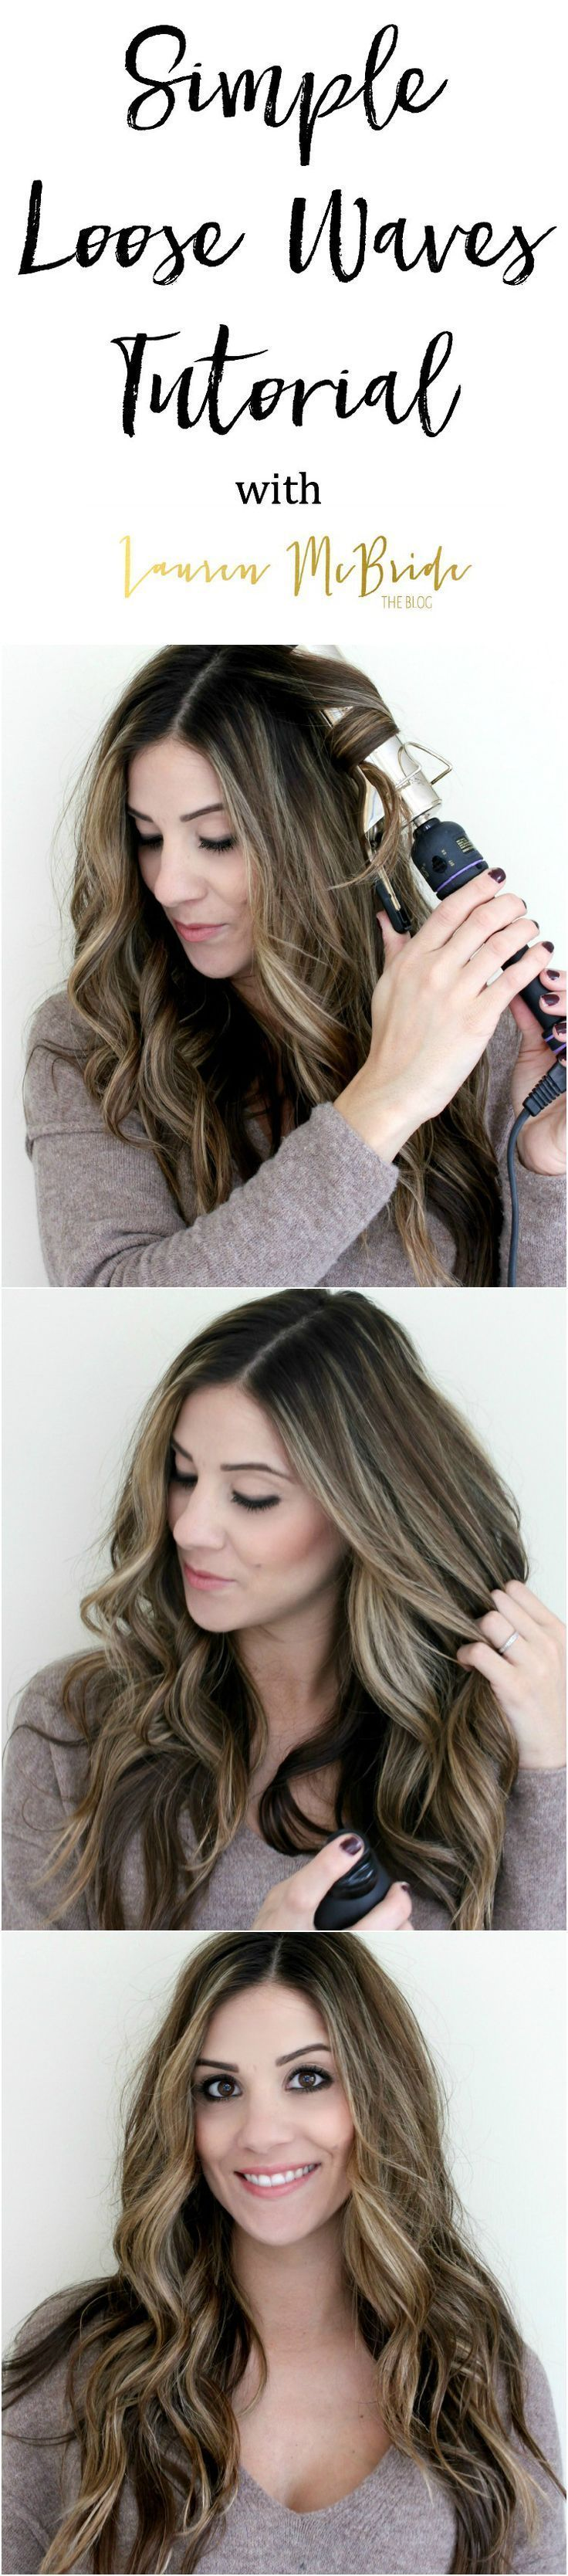 25 unique loose waves tutorial ideas on pinterest soft waves easy loose waves tutorial urmus Gallery